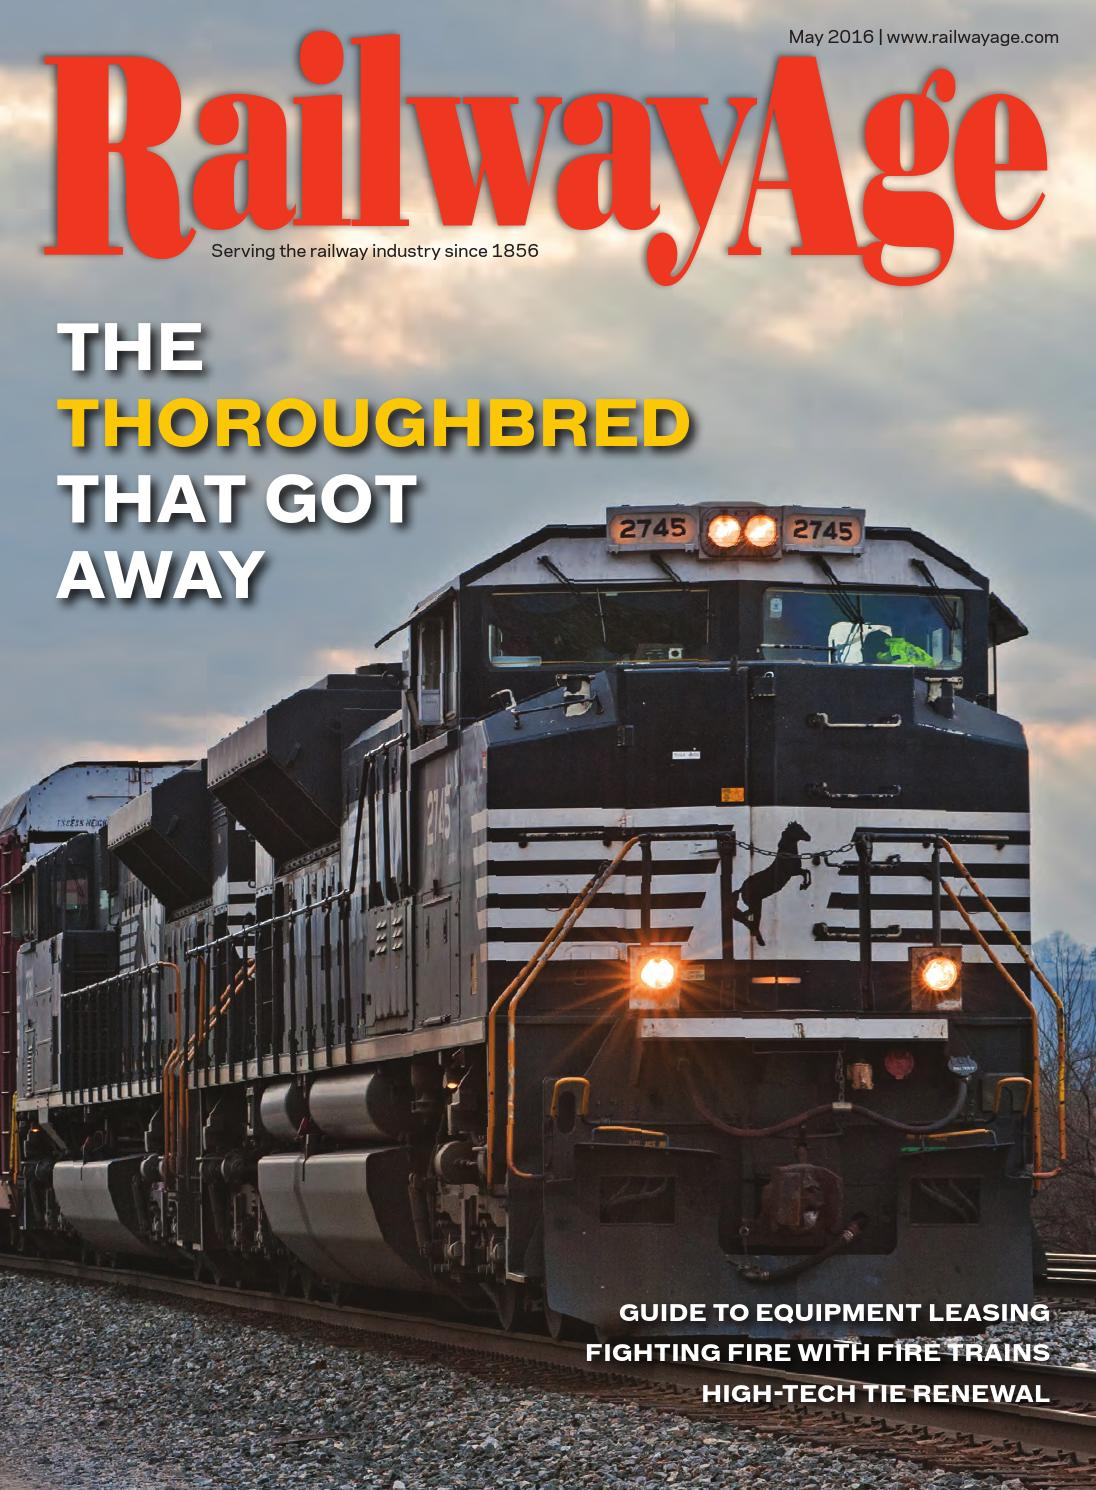 Railway Age November 2017 By Issuu Automatic Gate Control System With High Speed Alerting May 2016